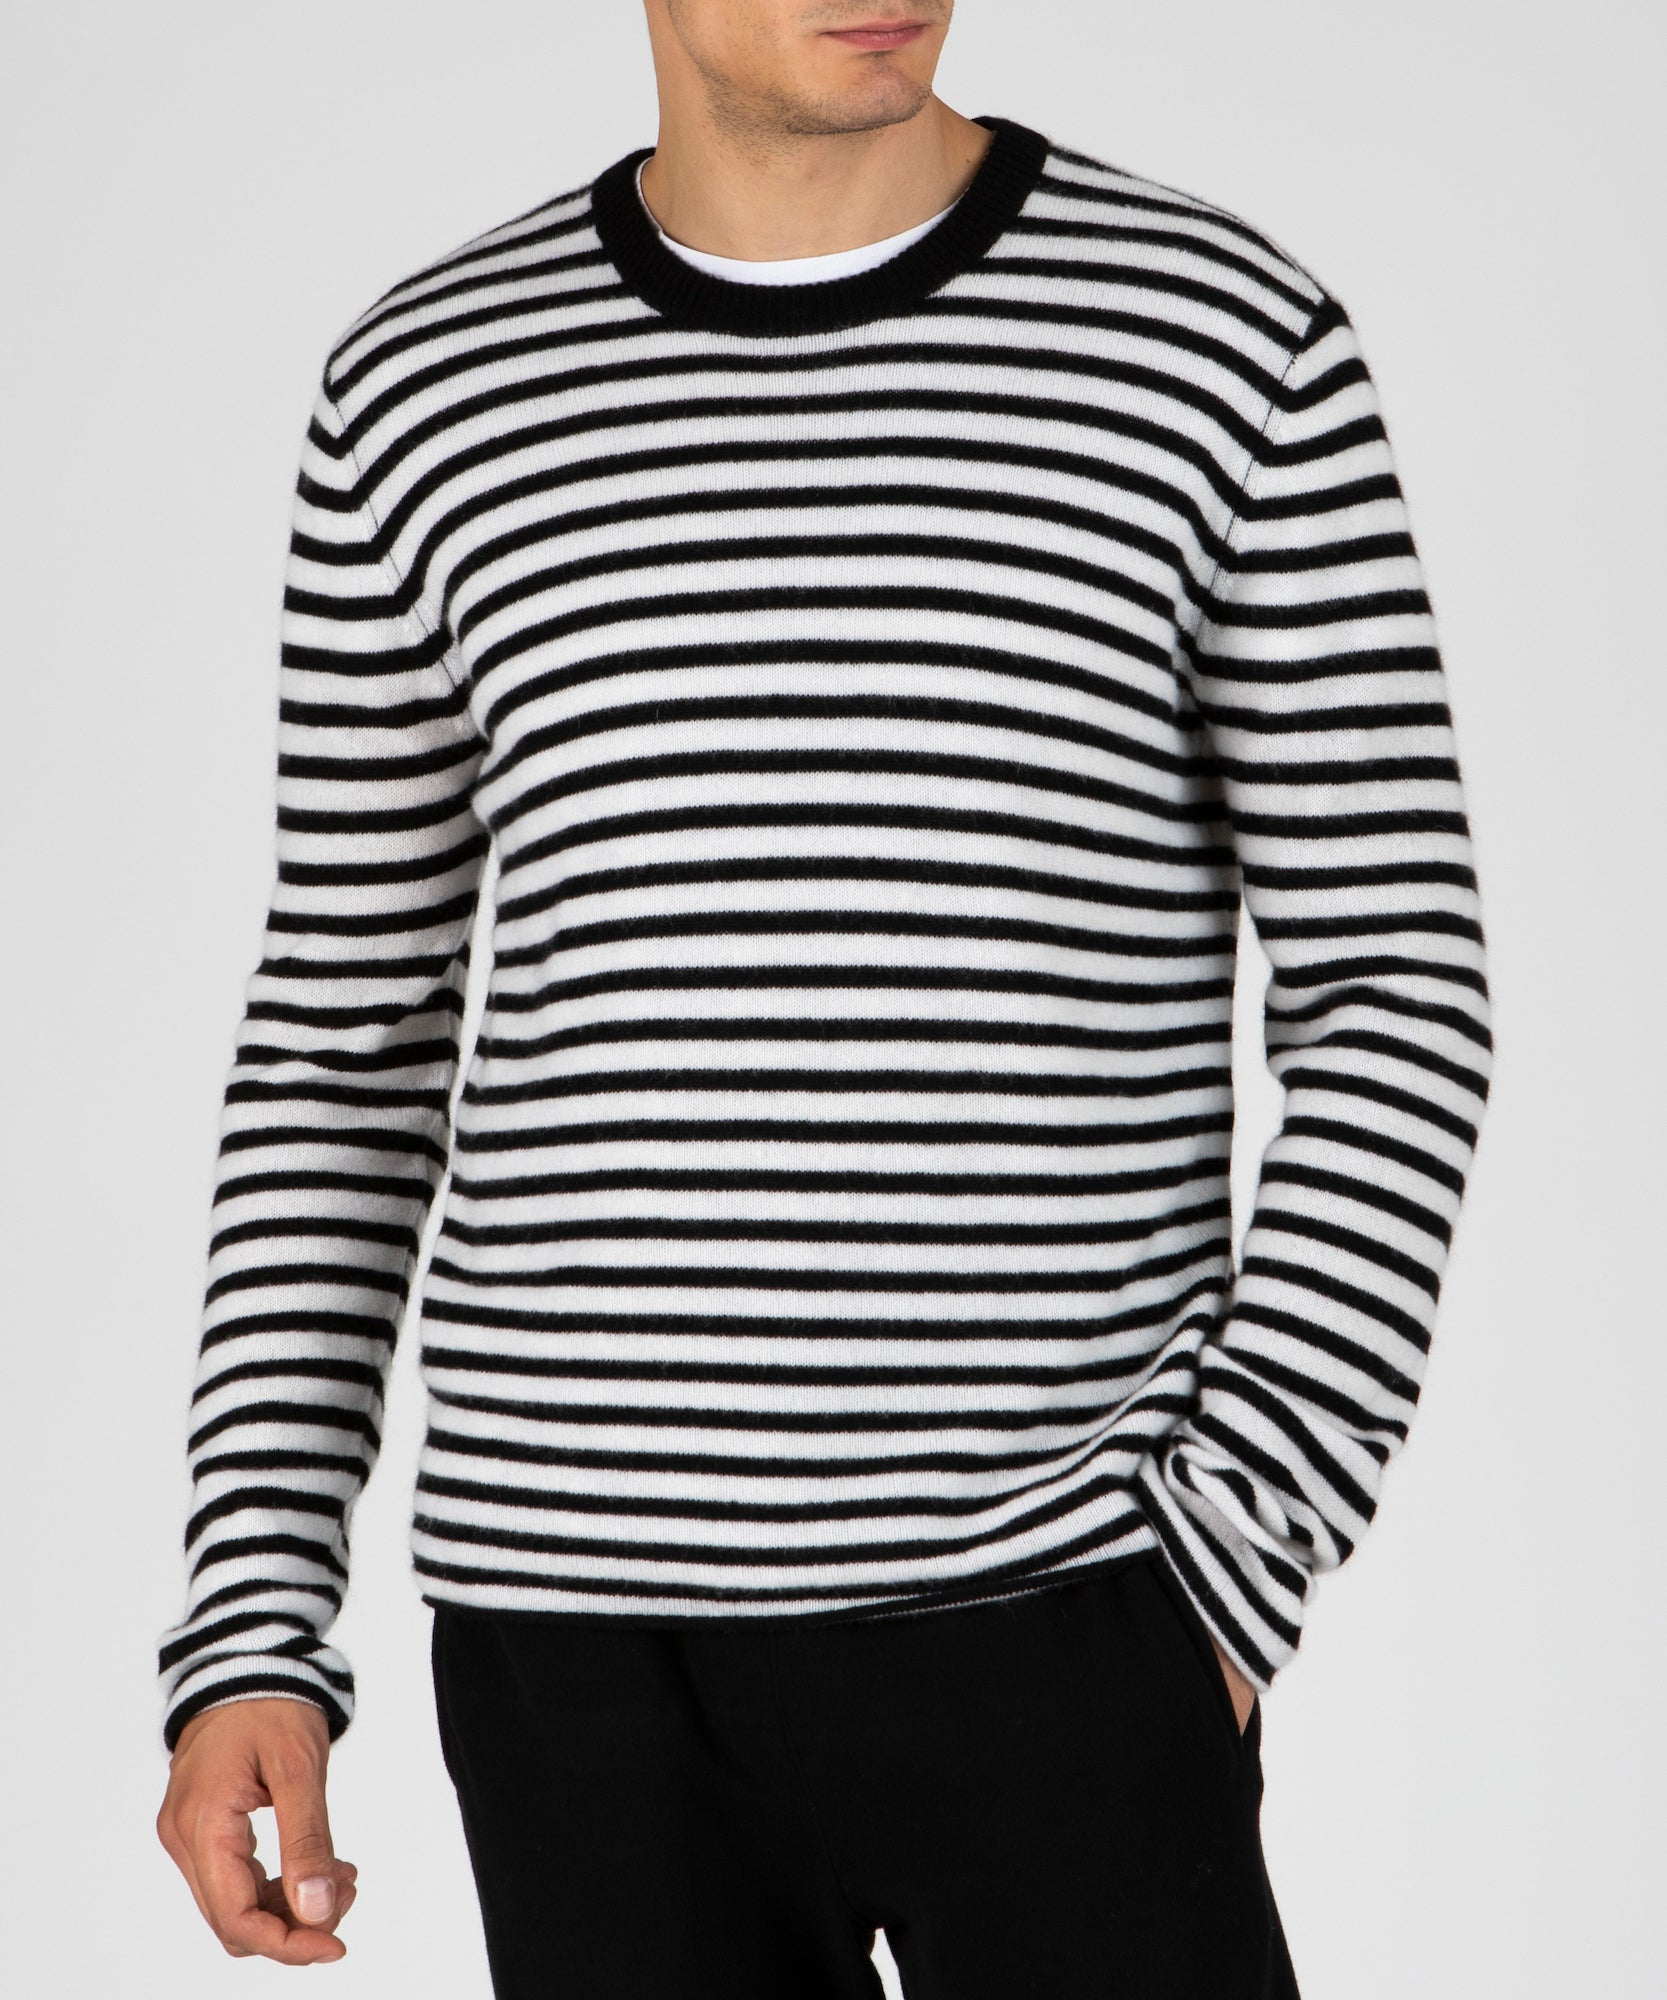 Black and Chalk Stripe Cashmere Crew Neck Sweater - Men's Luxe Cashmere Sweaters by ATM Anthony Thomas Melillo